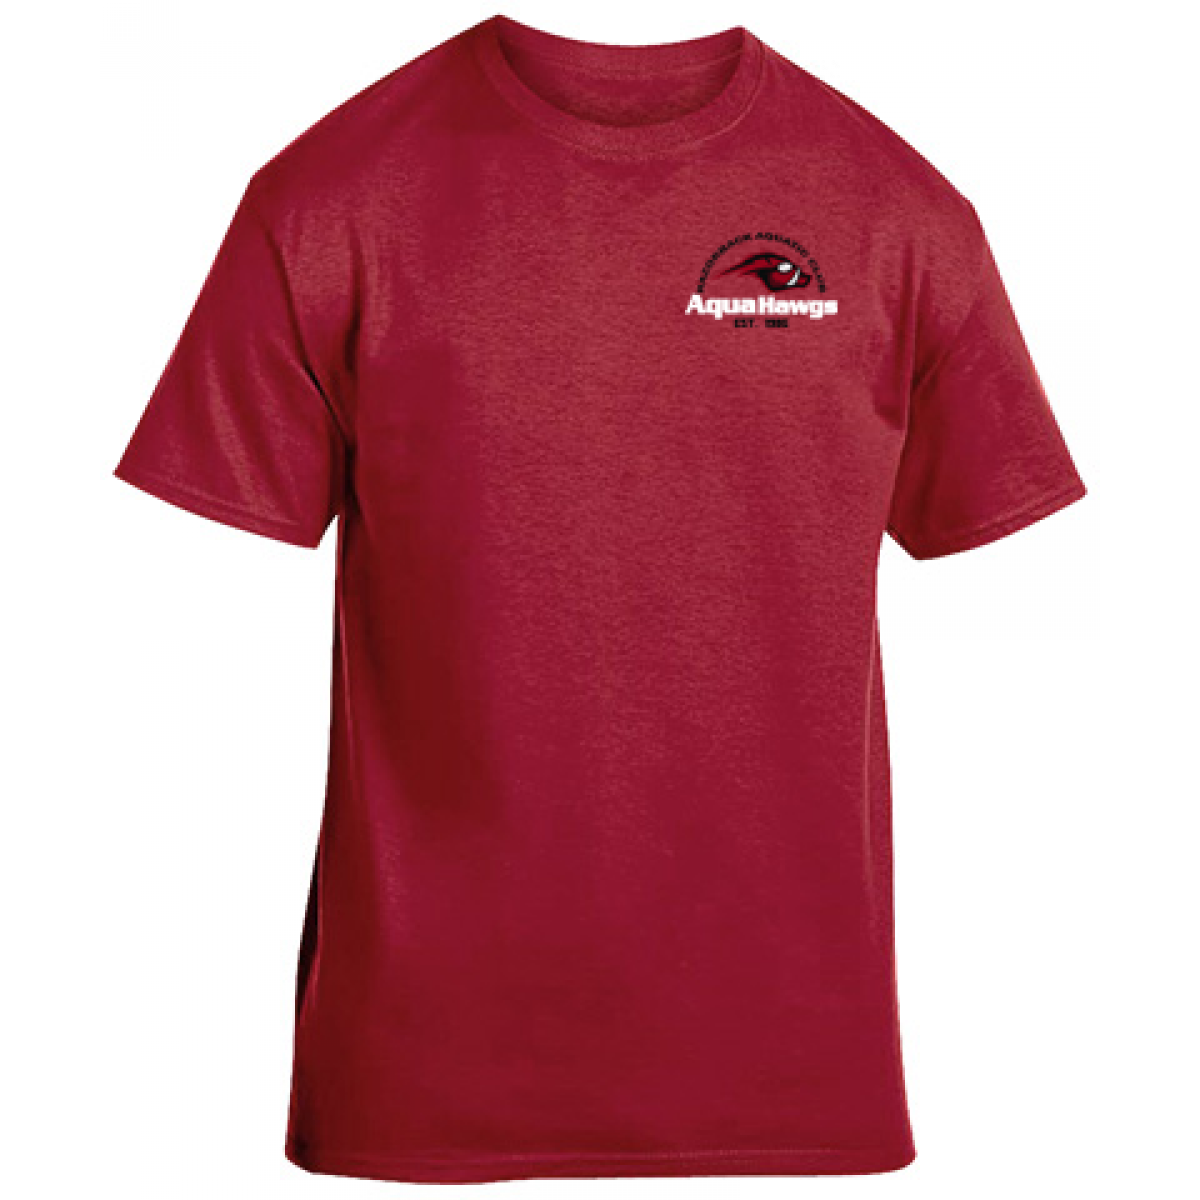 Gildan Cotton Short Sleeve T-Shirt - Cardinal Red-Cardinal Red-2XL